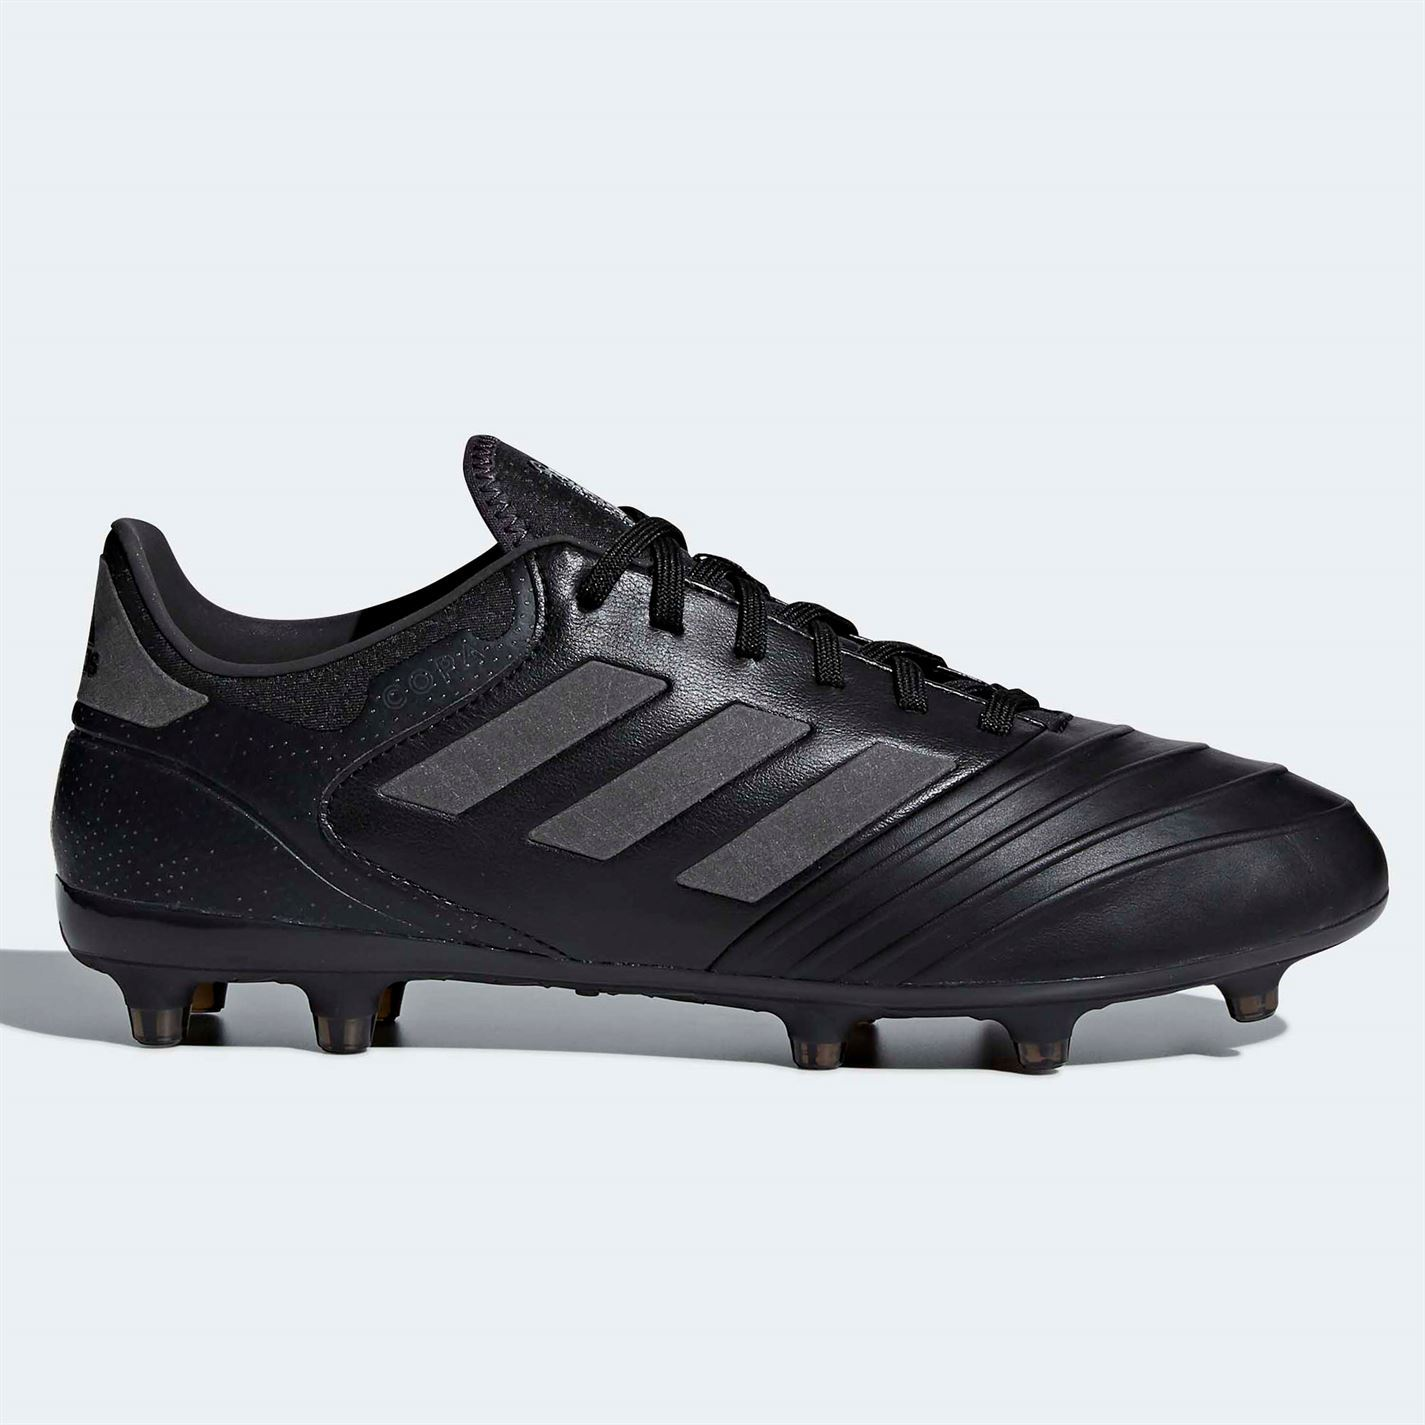 17292f552 ... adidas Copa 18.2 FG Firm Ground Football Boots Mens Black Soccer Shoes  Cleats ...